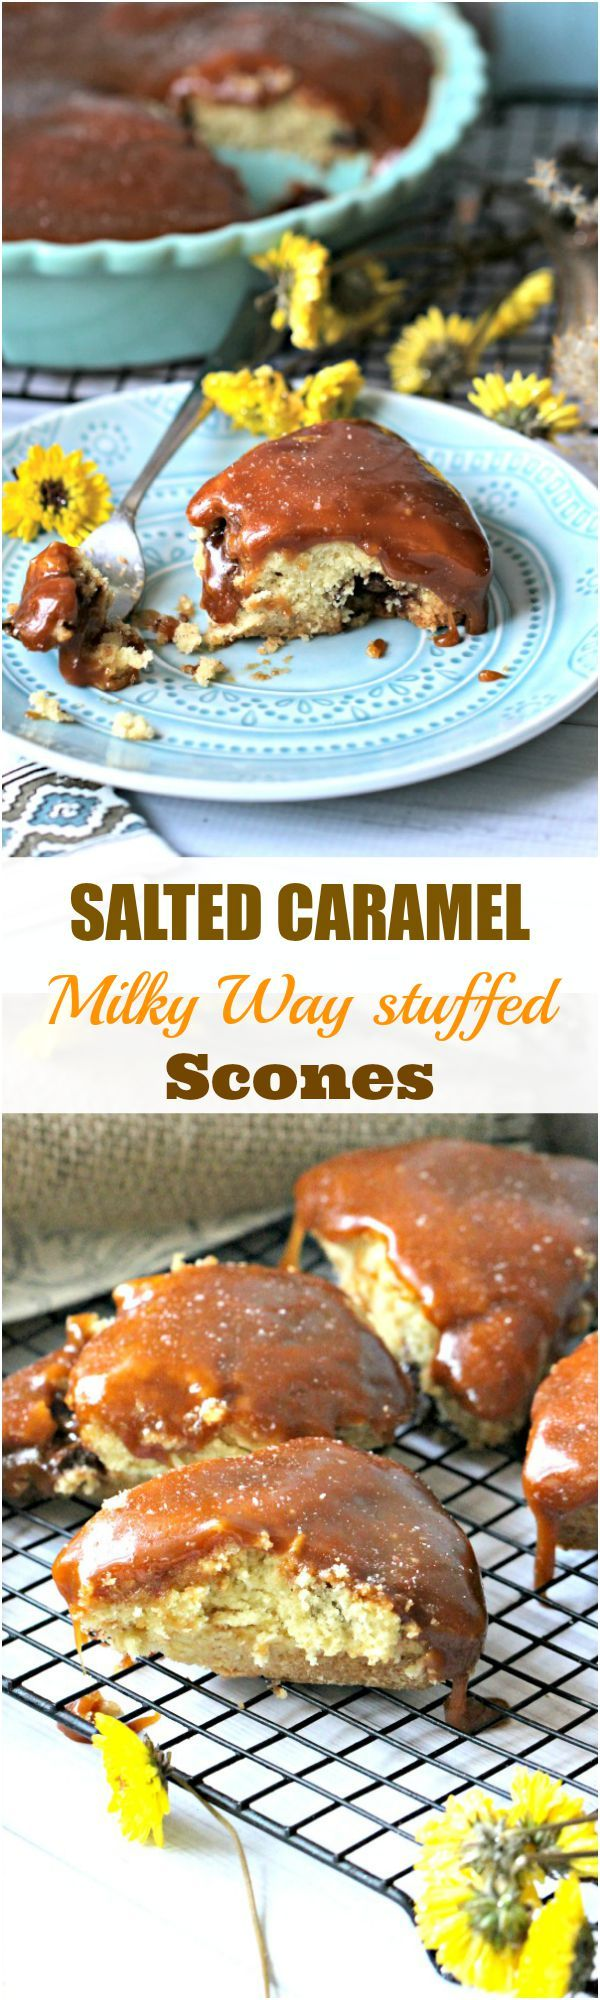 Salted Caramel Scones with Mini Milky Way Chocolates - Peas and Peonies